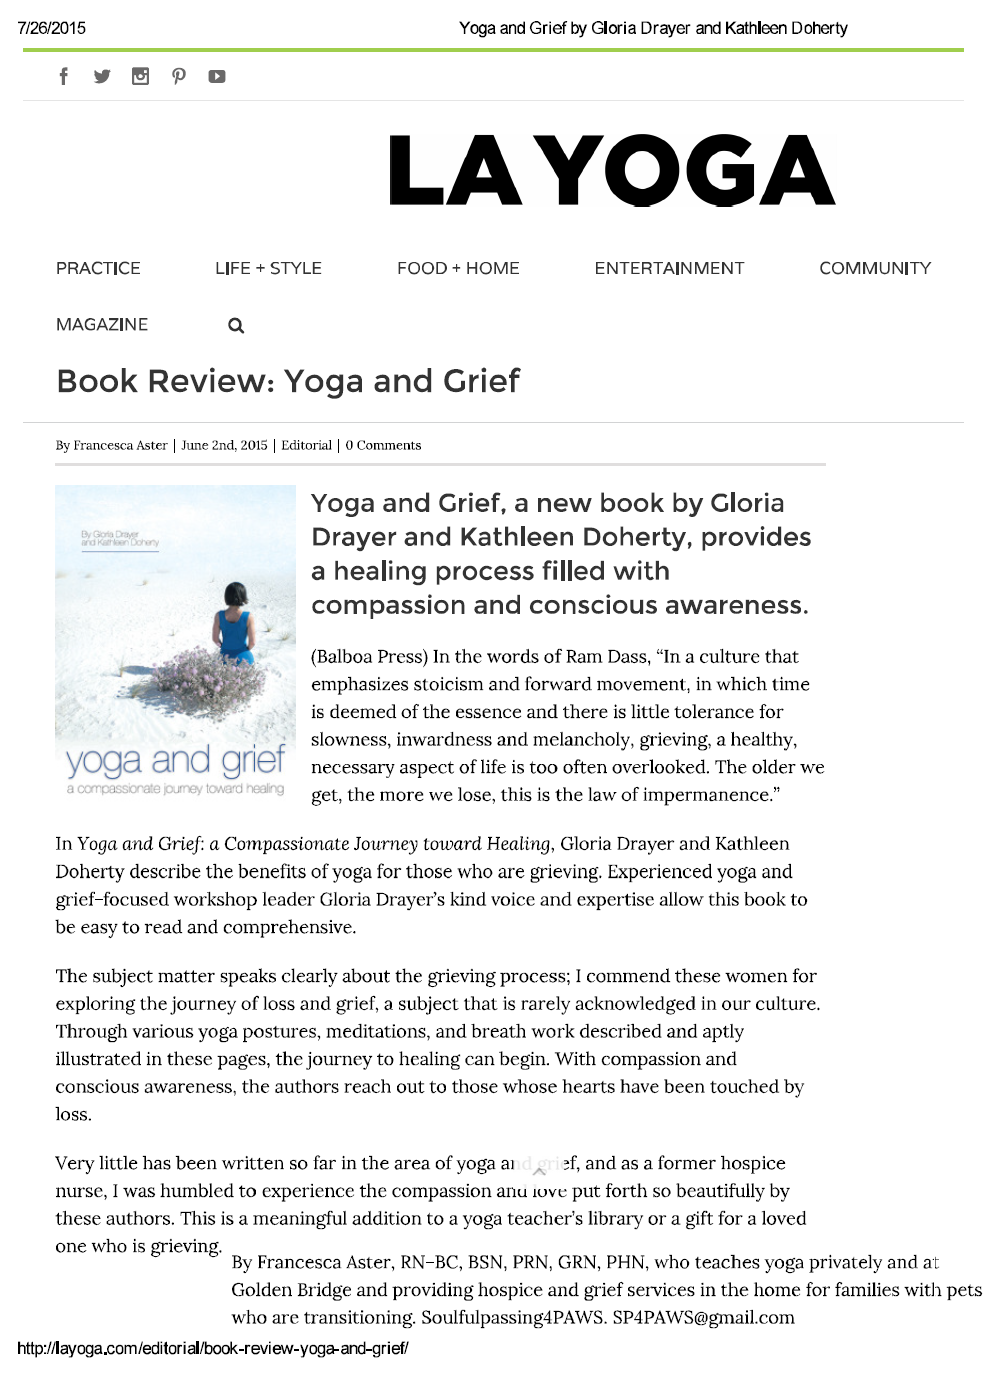 LA Yoga Yoga and Grief review